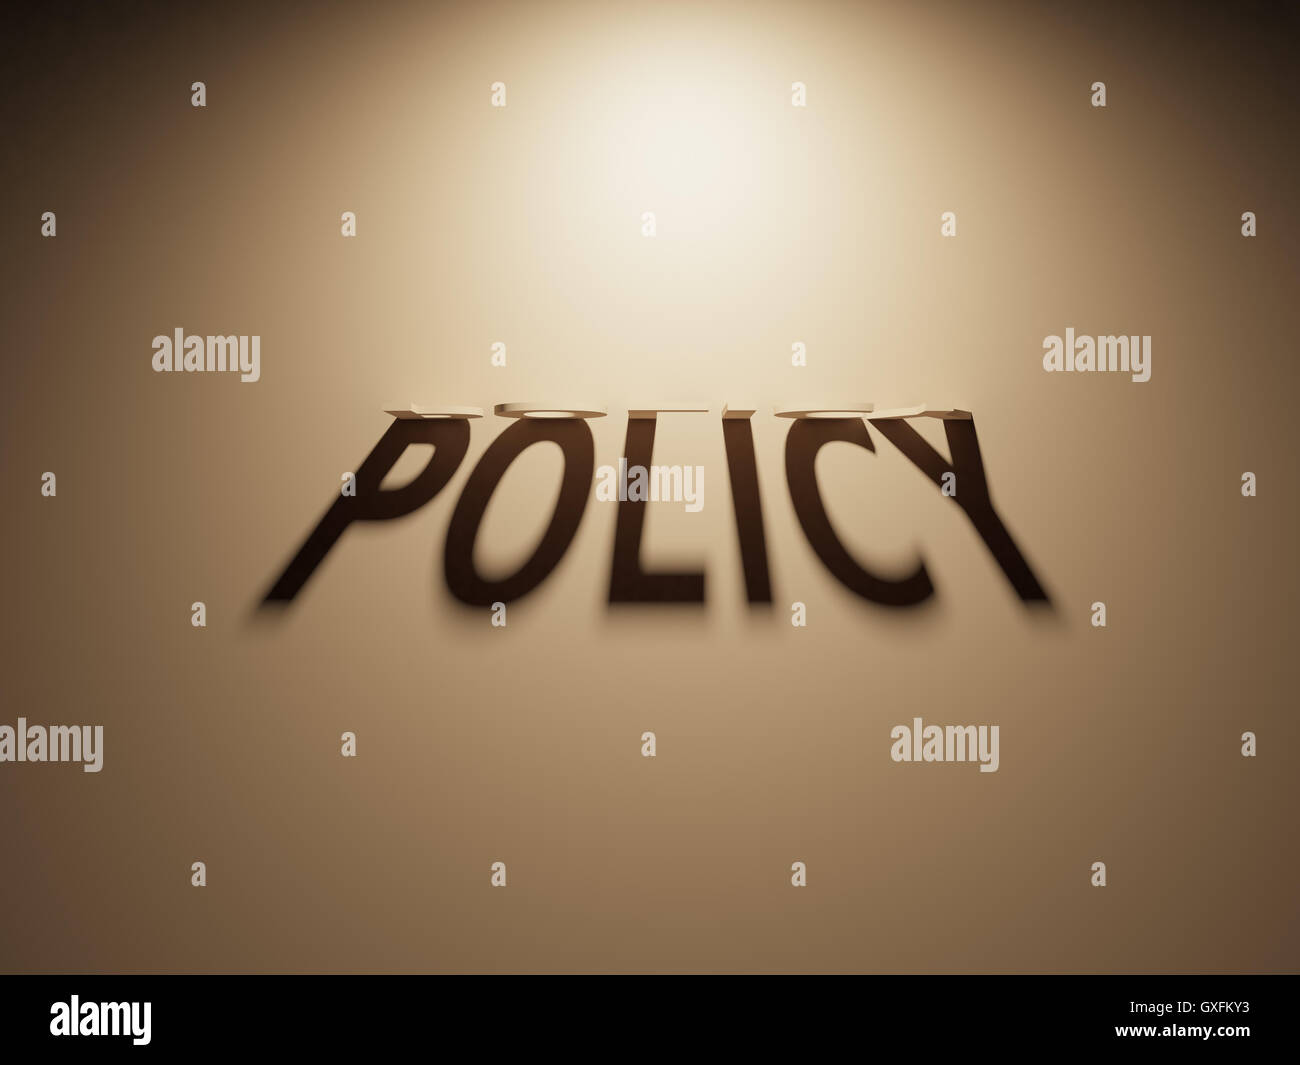 A 3D Rendering of the Shadow of an upside down text that reads Policy. - Stock Image